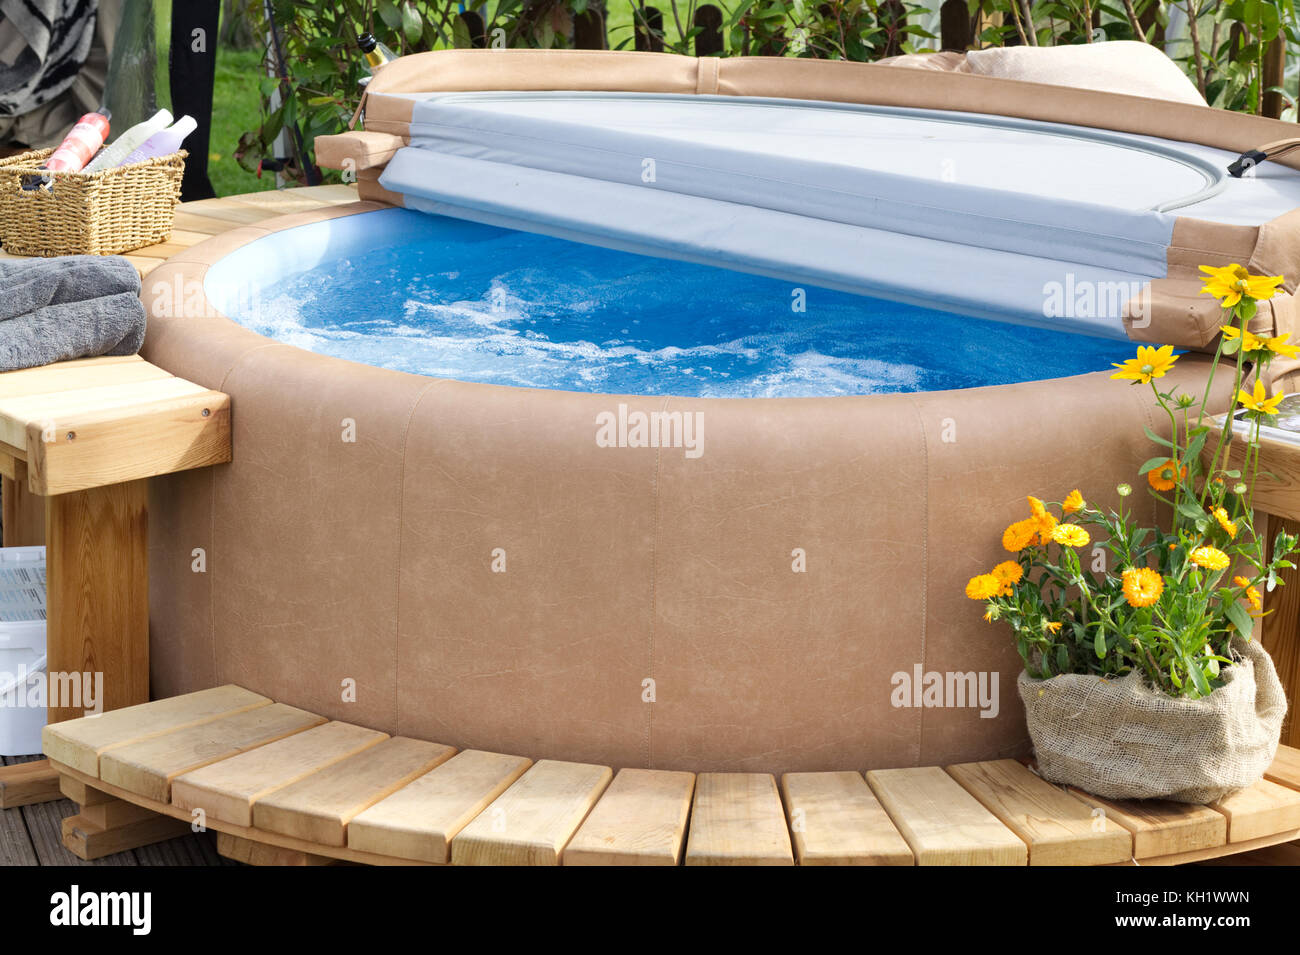 jacuzzi garden stock photos jacuzzi garden stock images alamy. Black Bedroom Furniture Sets. Home Design Ideas